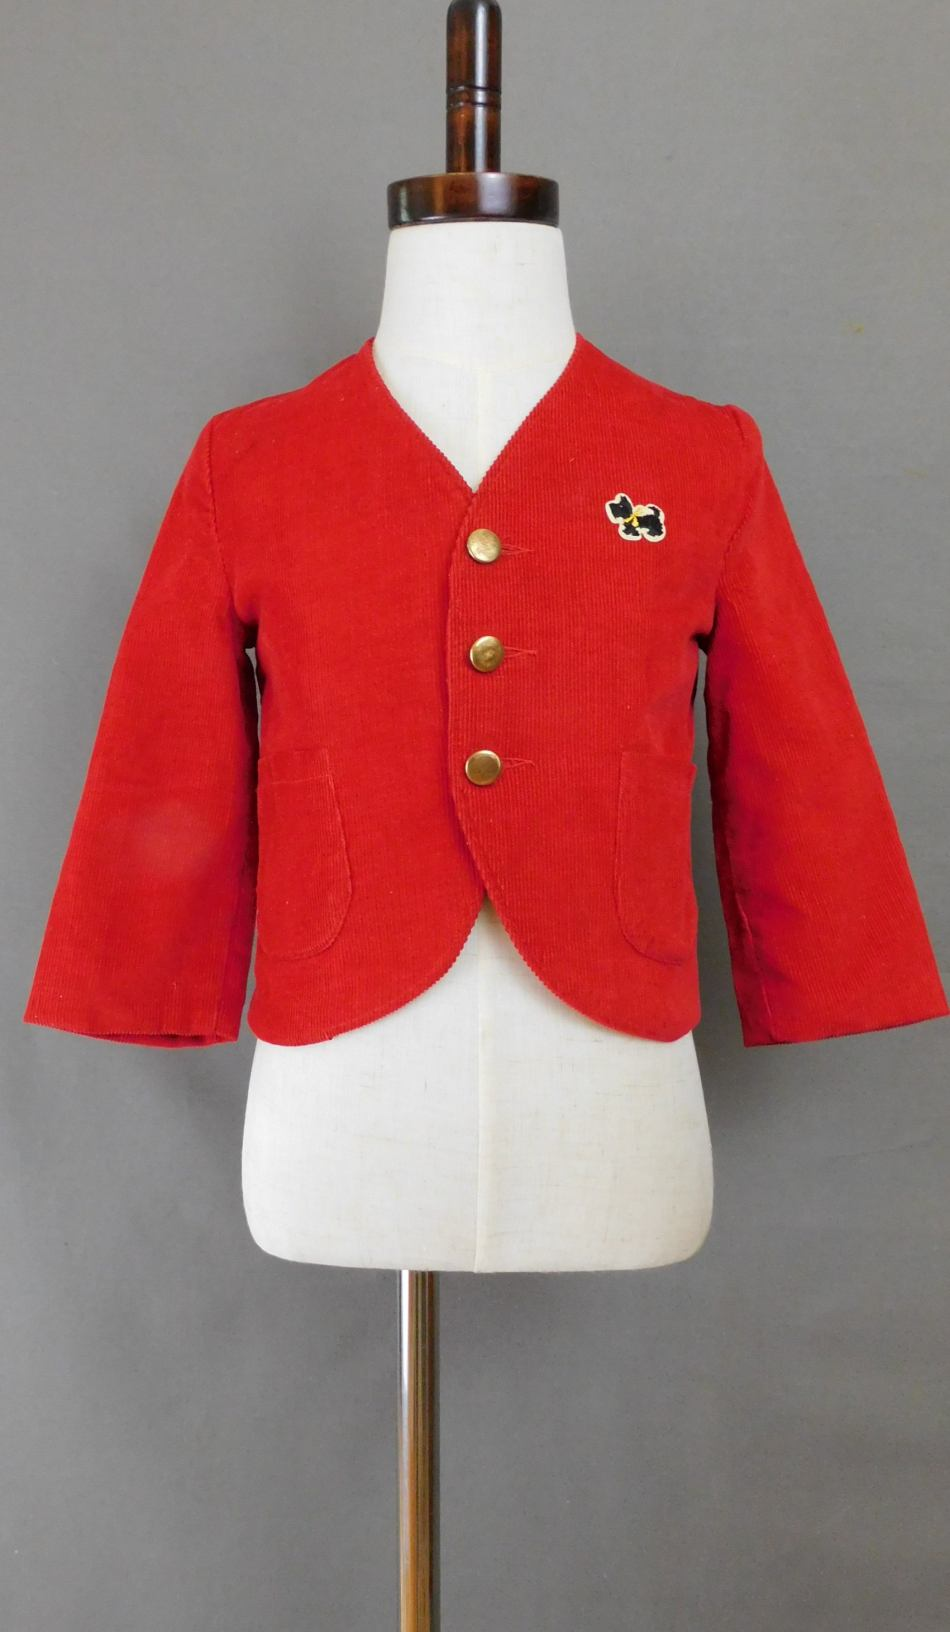 Vintage Child's Red Corduroy Jacket with Scotty Dog, Boy's 1960s, 23 inch chest